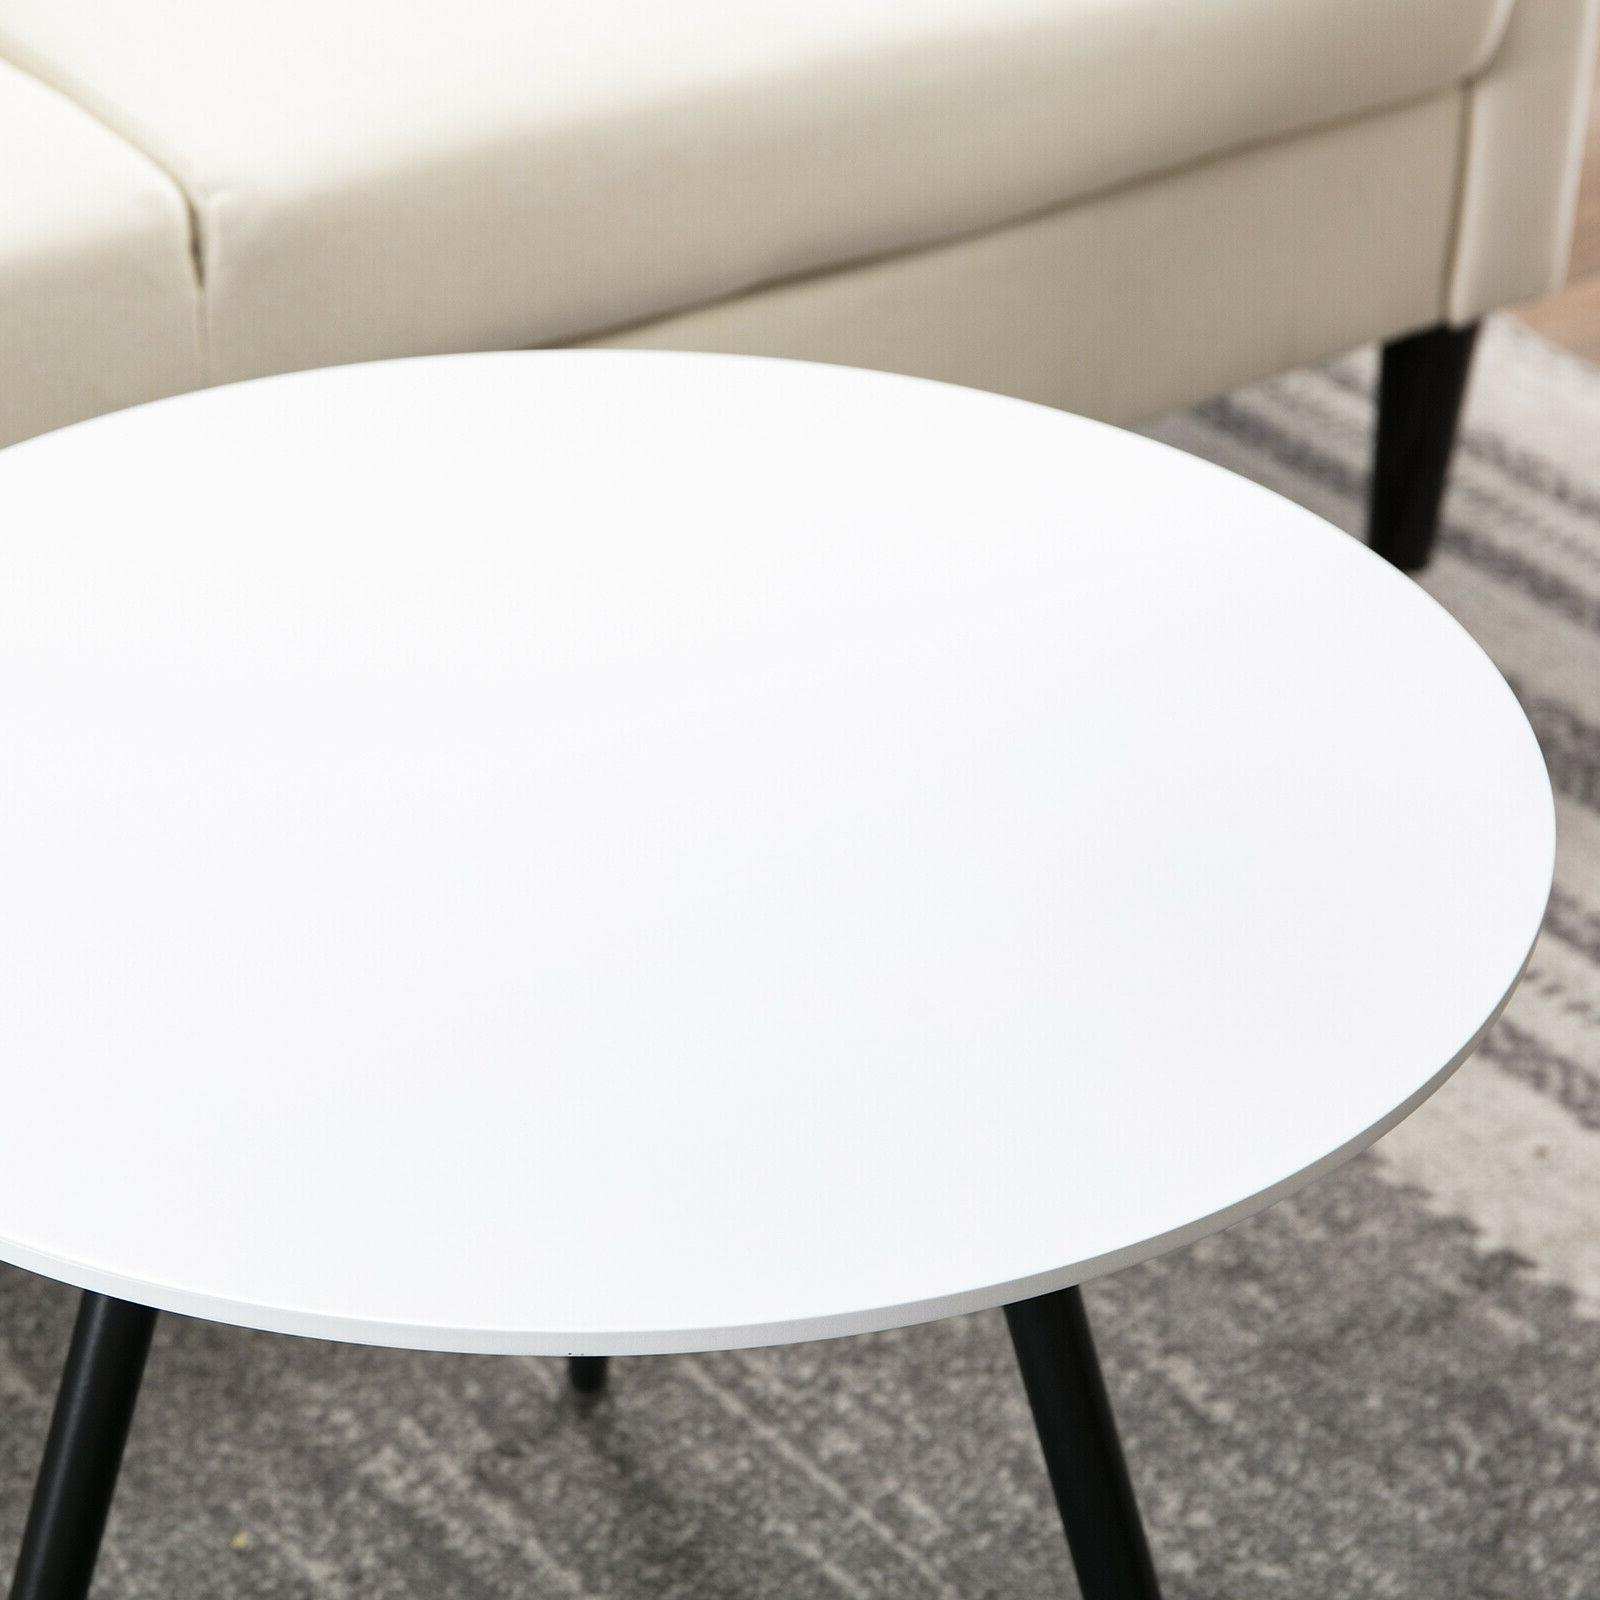 Modern Round Tables Coffee Side Table White Room